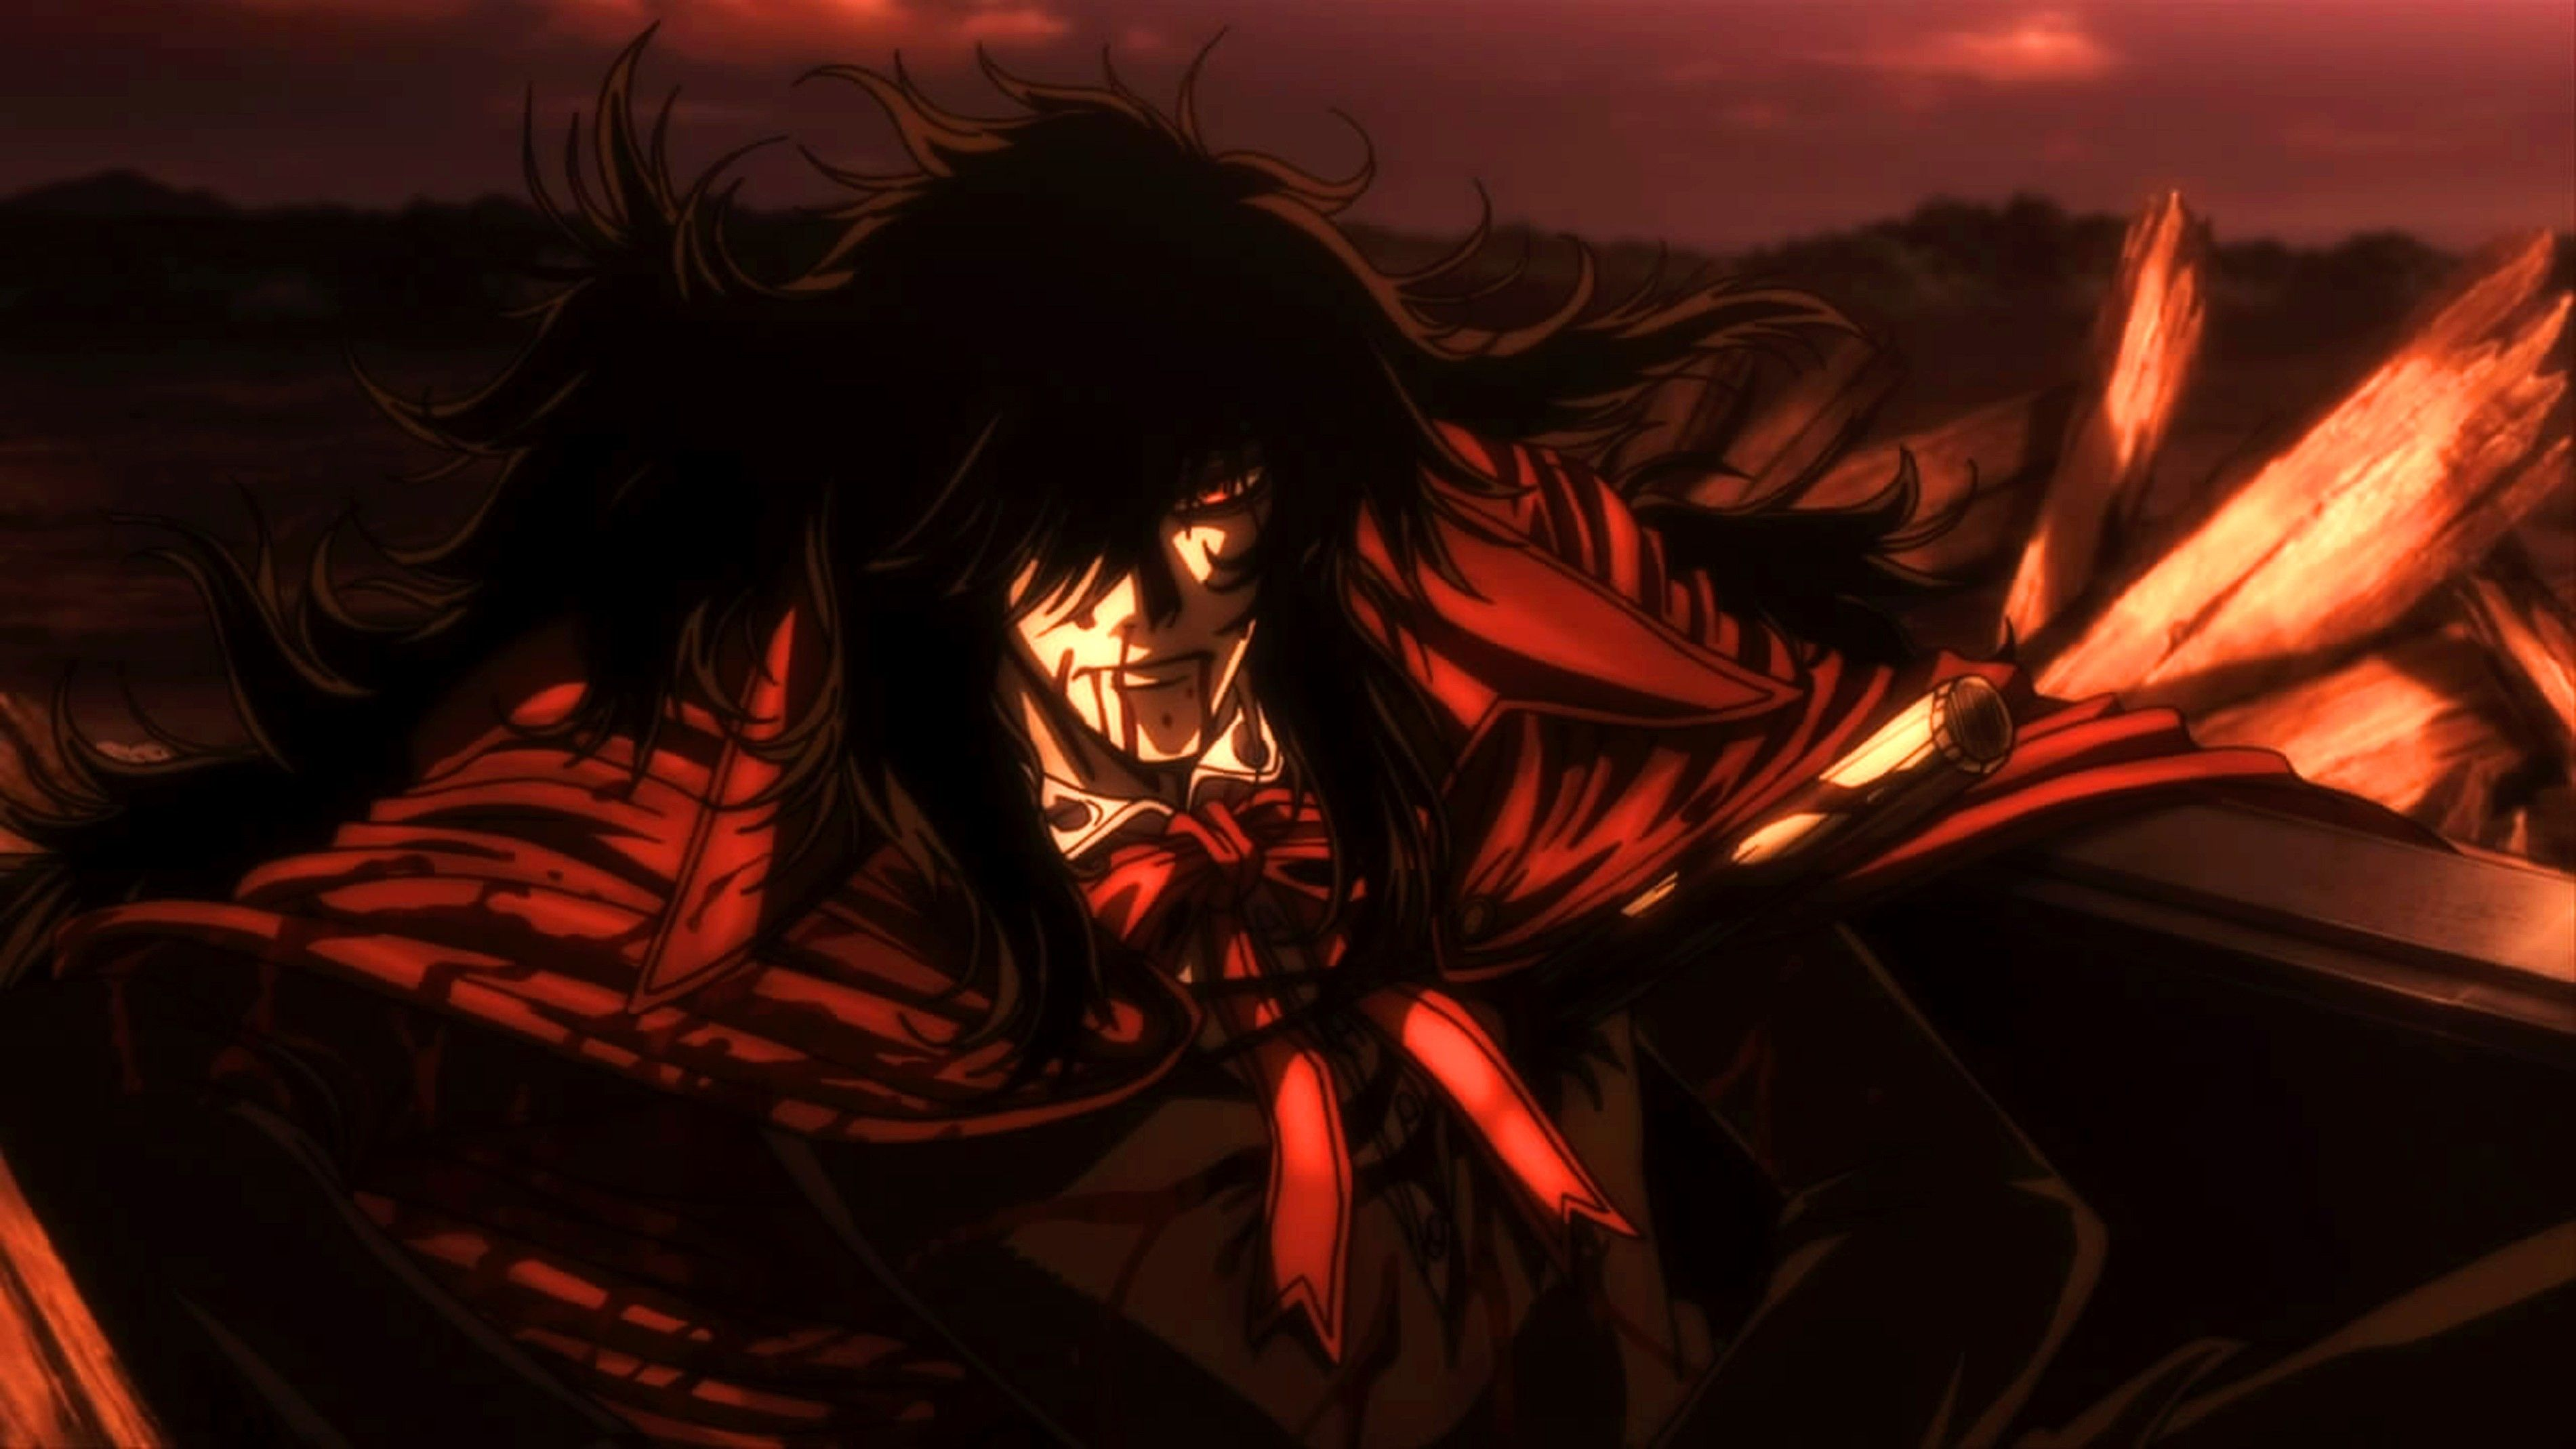 Alucard hd wallpapers - Anime hellsing wallpaper ...